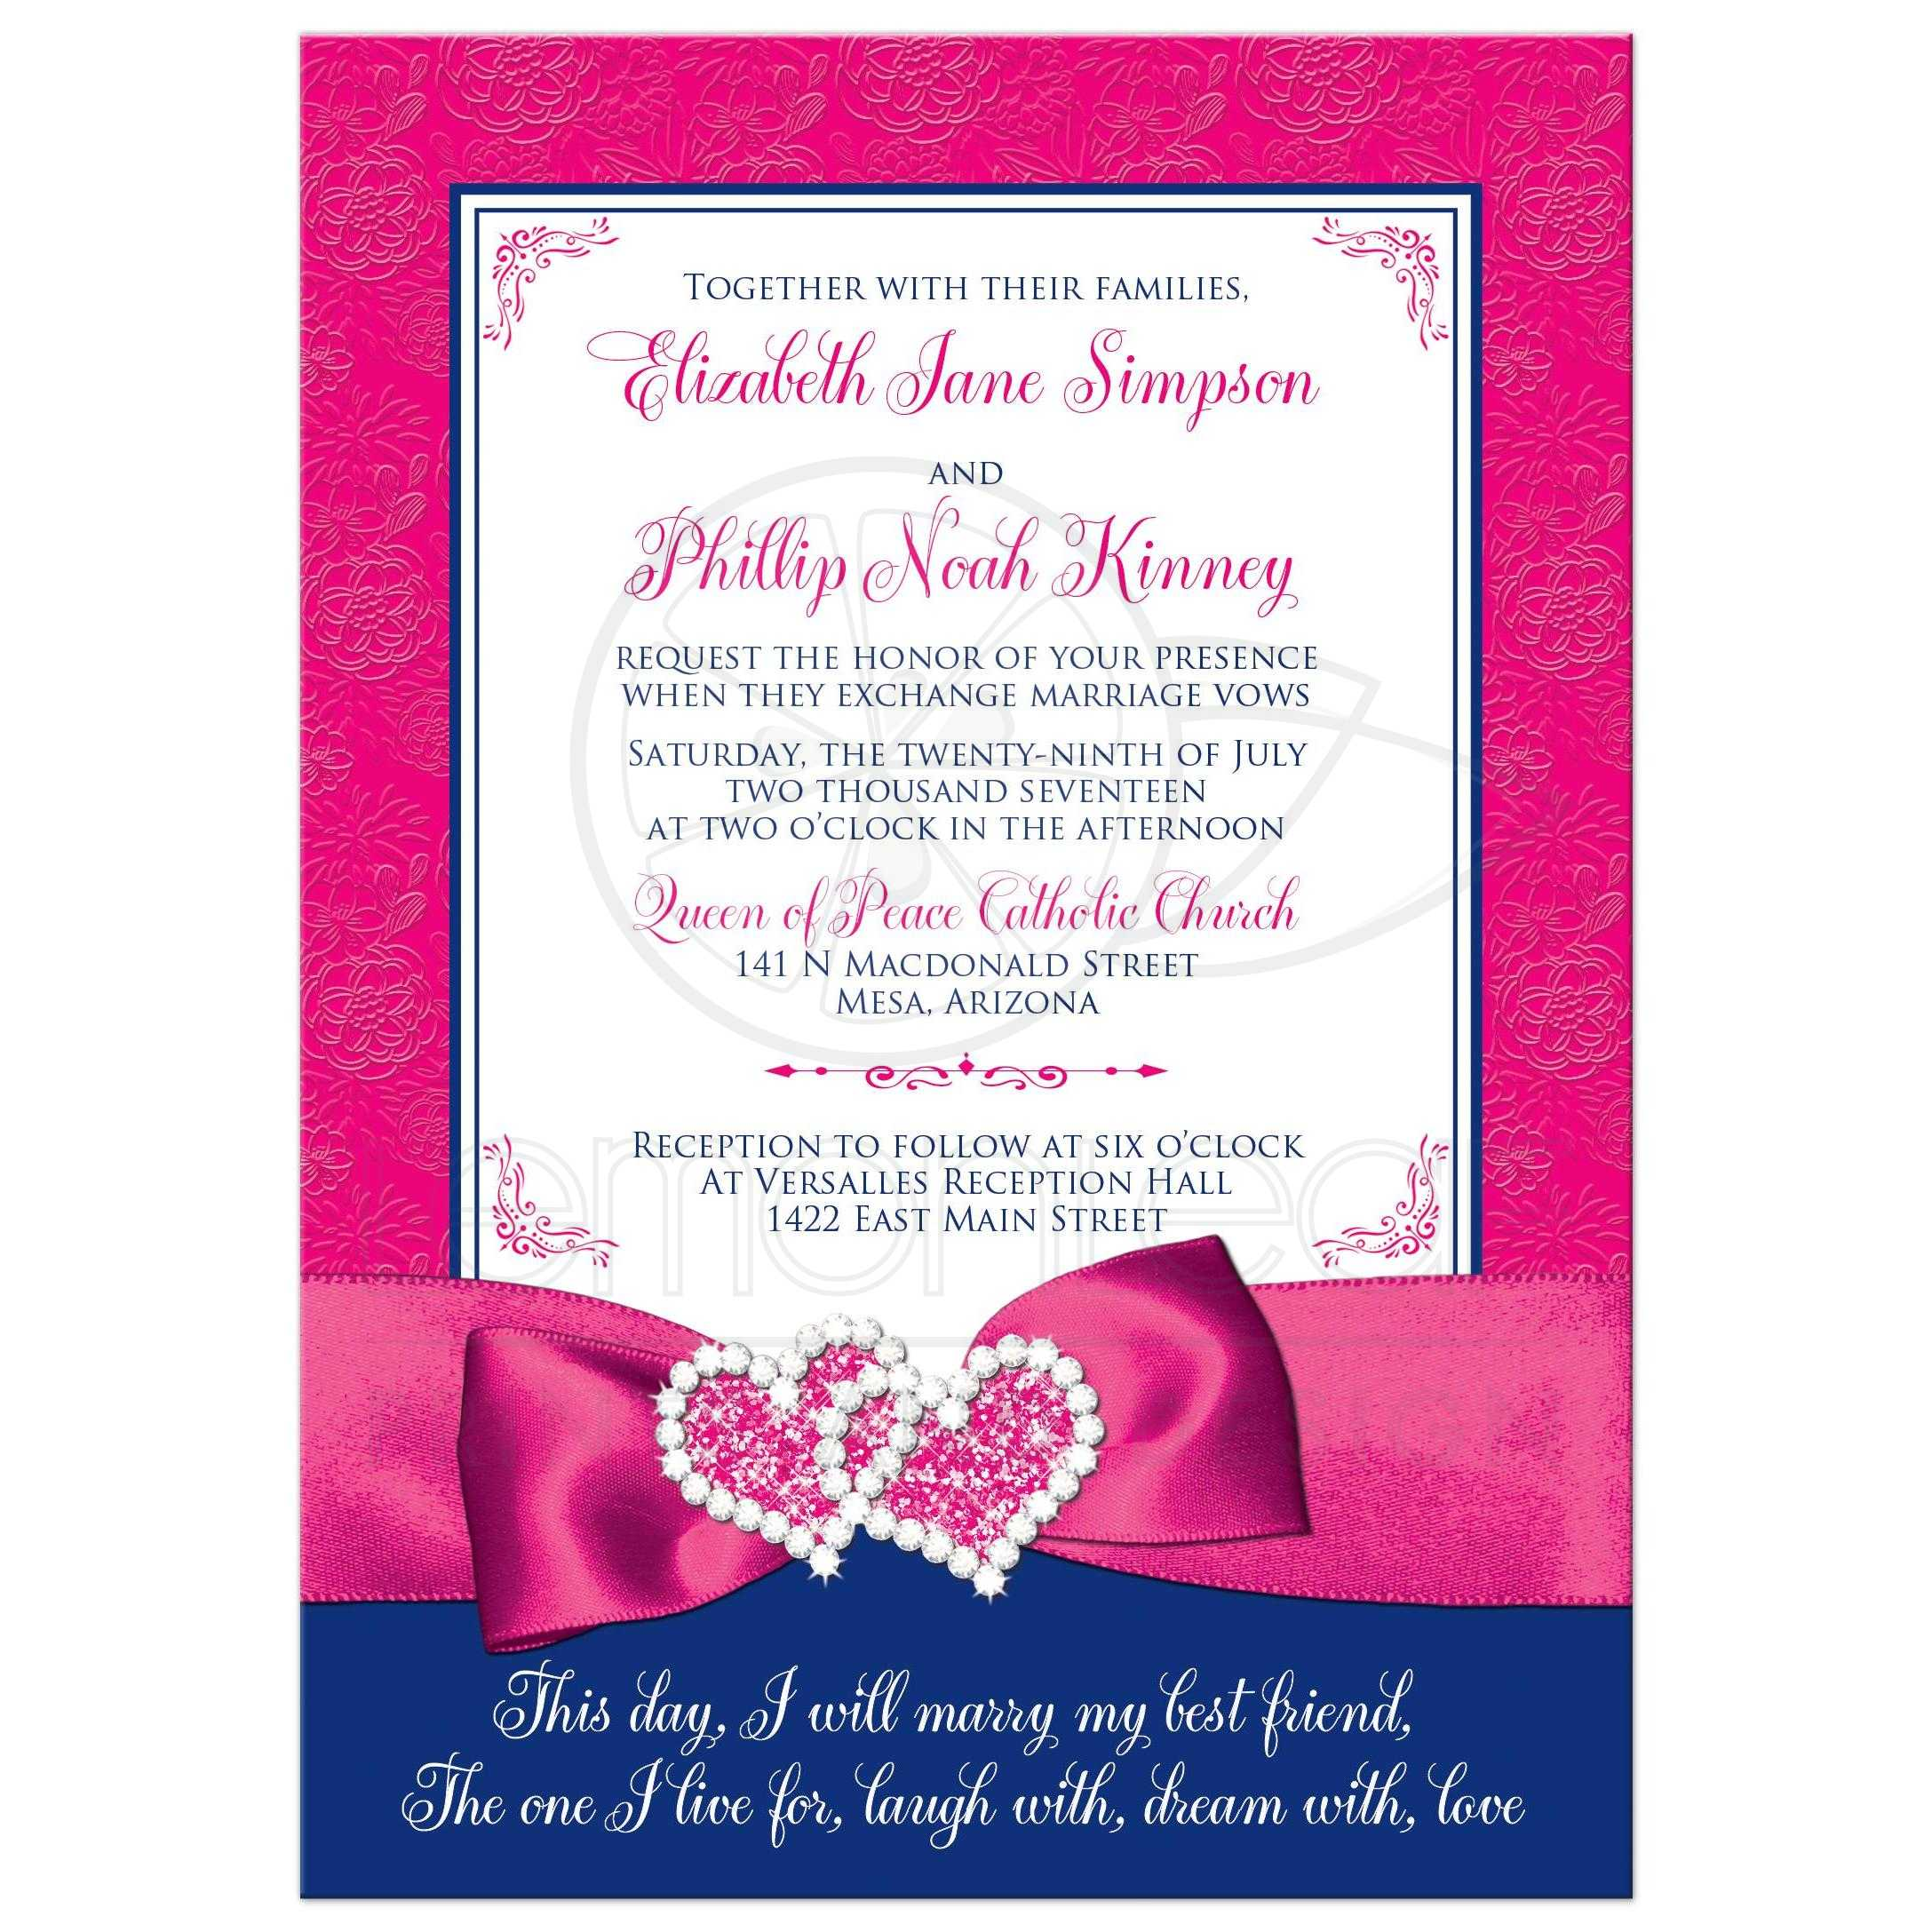 Royal Blue Pink And White Floral Pattern Wedding Invitations With Ribbon